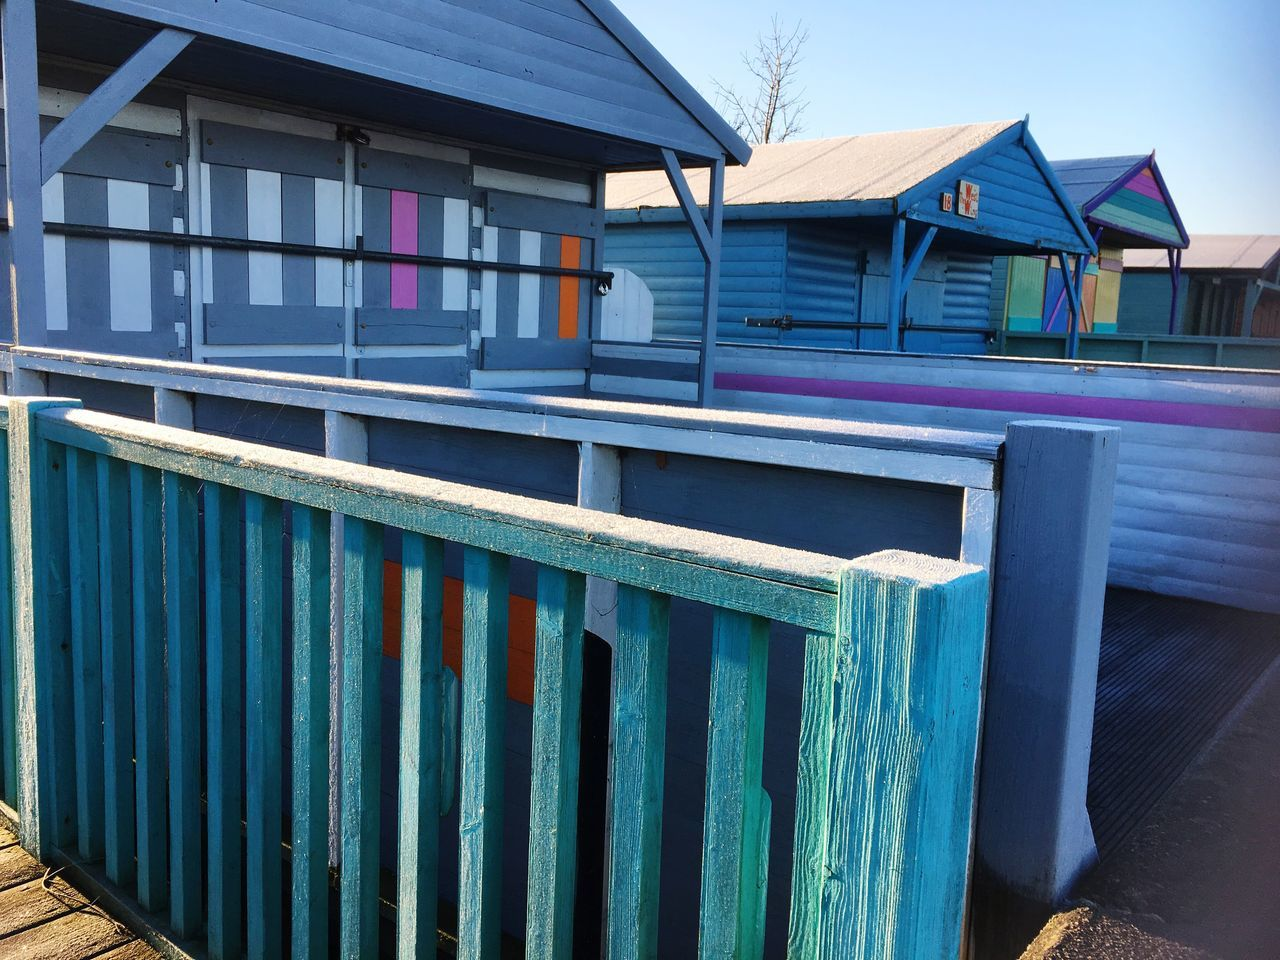 Beach Huts in Whitstable on Frozen Winter Morning Light